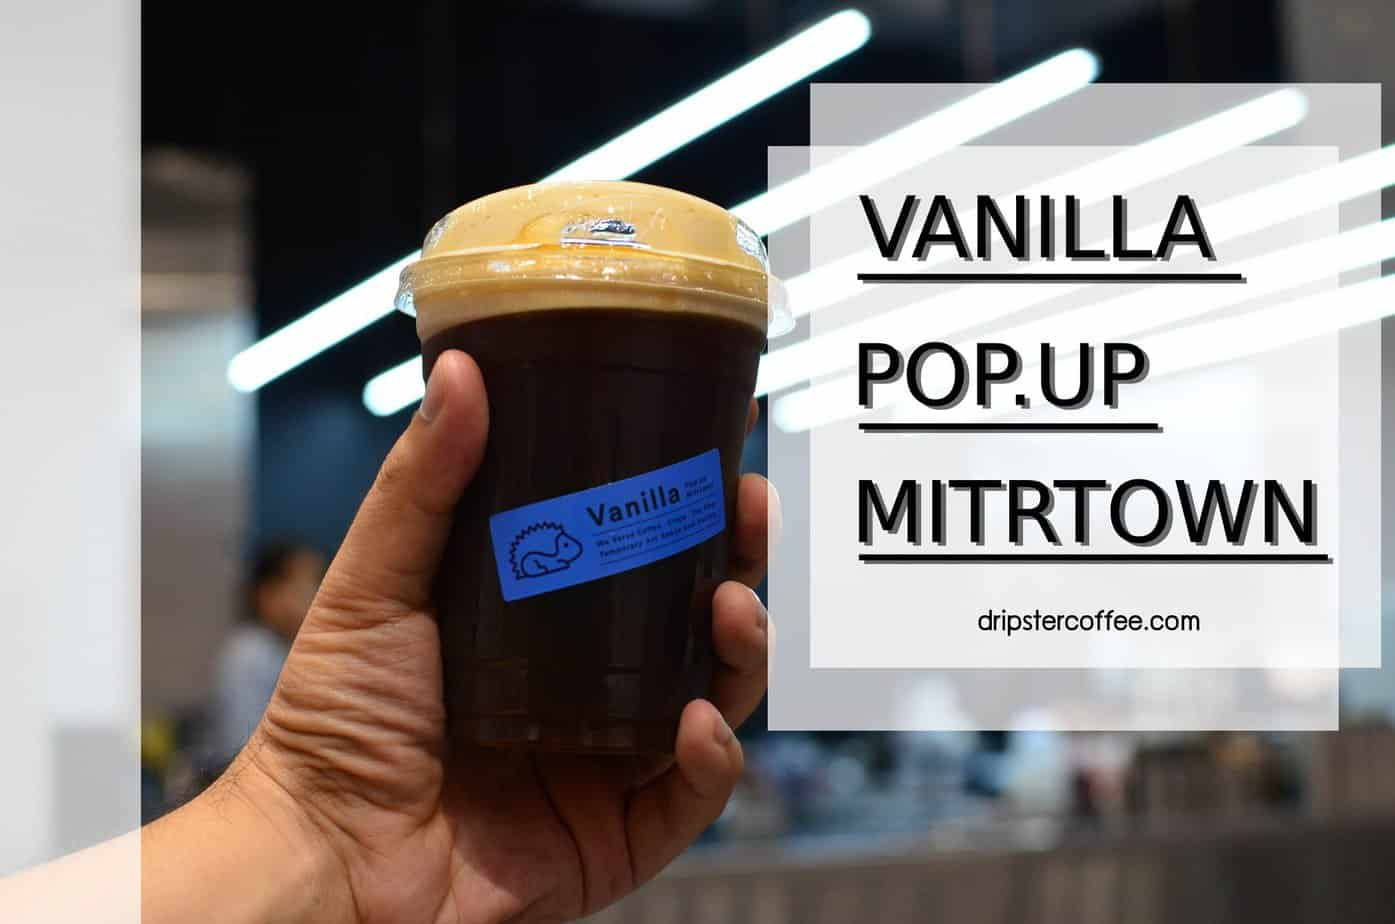 Nitro Cold brew vanilla pop up mitrtown cover